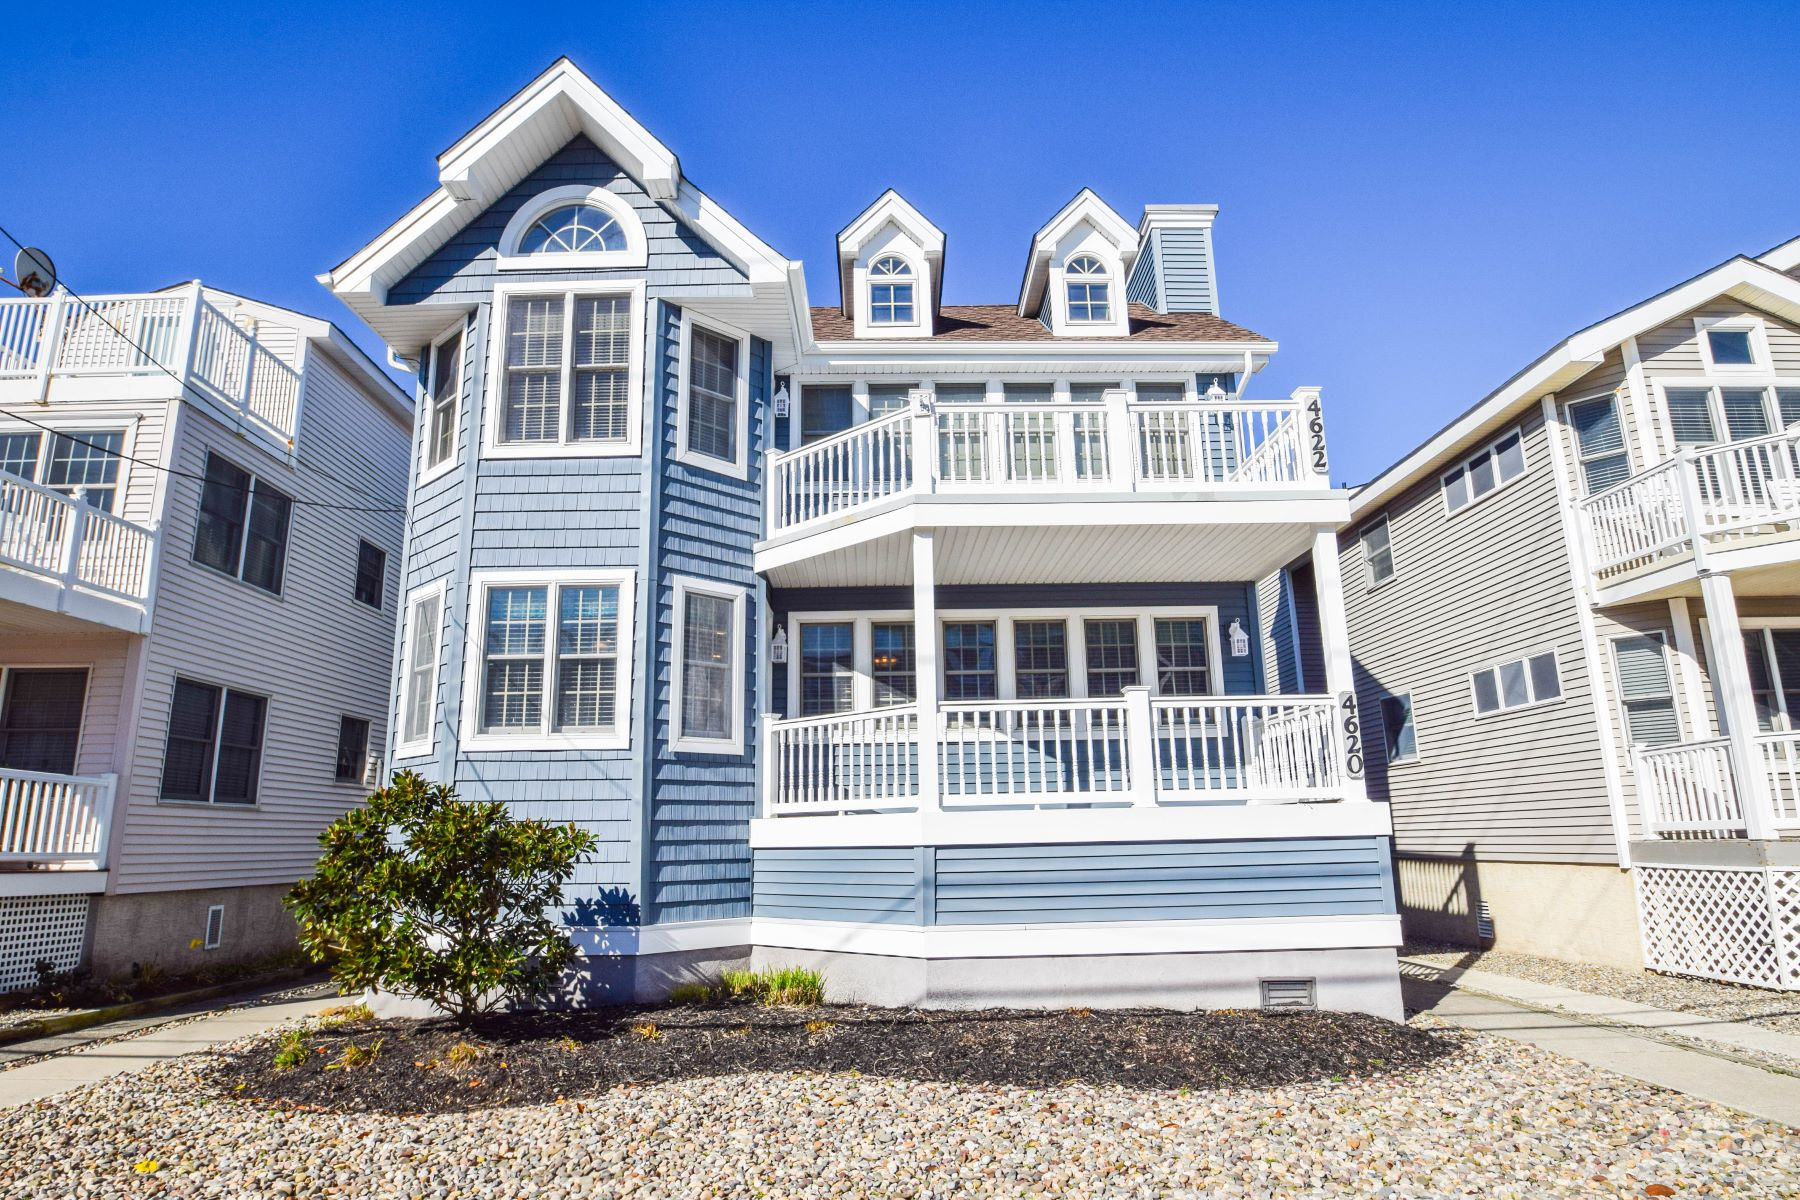 Condominium for Sale at Incredible Southend Location 4620 Central Avenue, Ocean City, New Jersey 08226 United States